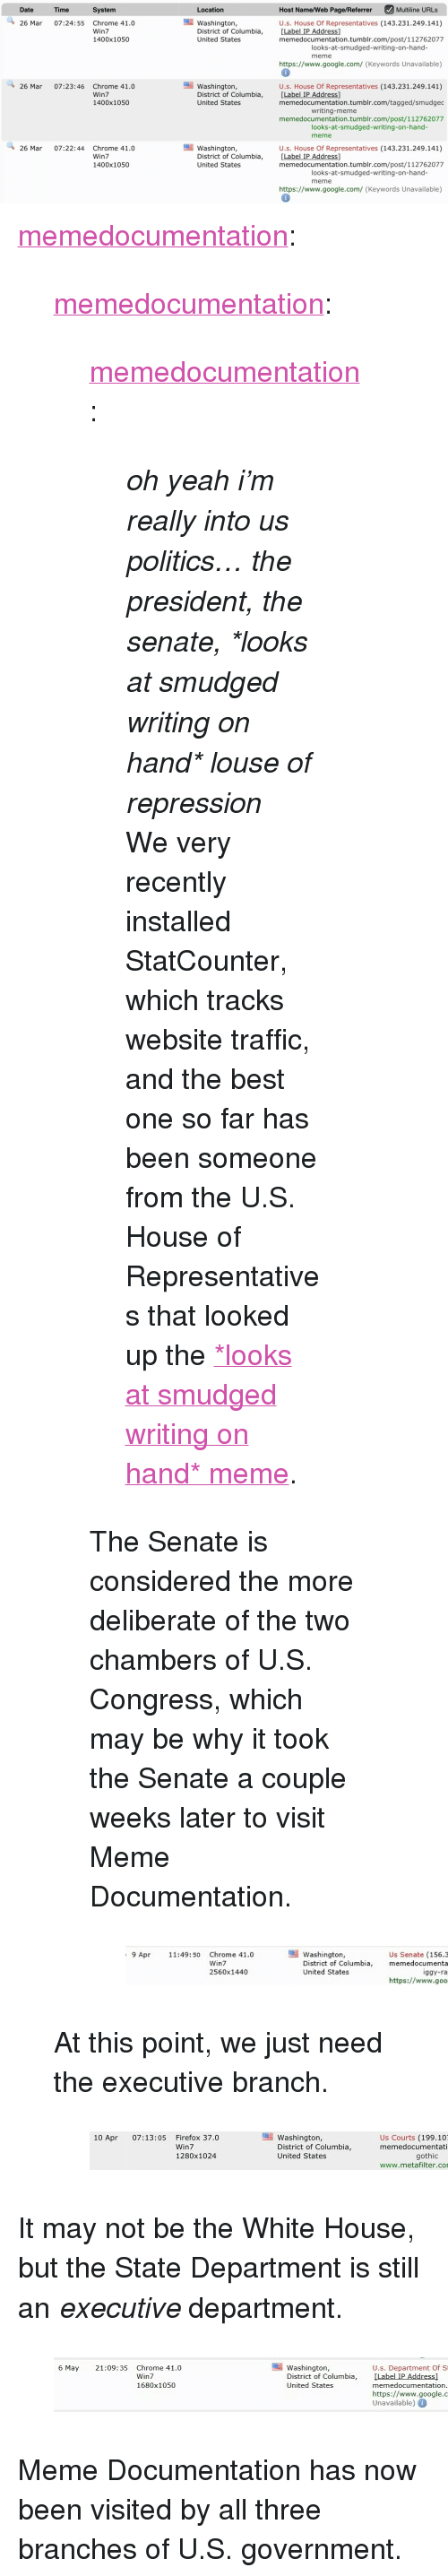 """Chrome, Google, and Meme: Host Name/Web Page/Referrer Multilie URLs  Date  Time  System  Location  U.s. House Of Representatives (143.231.249.141)  [Label IP Address]  memedocumentation.tumblr.com/post/112762077  26 Mar 07:24:55 Chrome 41.0  Win7  1400x1050  Washington,  District of Columbia,  United States  looks-at-smudged-writing-on-hand-  meme  https://www.google.com/ (Keywords Unavailable)  26 Mar 07:23:46 Chrome 41.0  Win7  1400x1050  Washington,  District of Columbia,  United States  U.s. House Of Representatives (143.231.249.141)  [Label IP Address]  memedocumentation.tumblr.com/tagged/smudgec  writing-meme  memedocumentation.tumblr.com/post/112762077  looks-at-smudged-writing-on-hand-  meme  Washington,  District of Columbia,  United States  26 Mar 07:22:44 Chrome 41.0  Win7  1400x1050  U.s. House Of Representatives (143.231.249.141)  [Label IP Address]  memedocumentation.tumblr.com/post/112762077  looks-at-smudged-writing-on-hand  meme  https://www.google.com/ (Keywords Unavailable) <p><a class=""""tumblr_blog"""" href=""""http://memedocumentation.tumblr.com/post/116050445370/memedocumentation-memedocumentation-oh-yeah"""">memedocumentation</a>:</p>  <blockquote><p><a class=""""tumblr_blog"""" href=""""http://memedocumentation.tumblr.com/post/115993996035/memedocumentation-oh-yeah-im-really-into-us"""">memedocumentation</a>:</p>  <blockquote><p><a class=""""tumblr_blog"""" href=""""http://memedocumentation.tumblr.com/post/114734210760/oh-yeah-im-really-into-us-politics-the"""">memedocumentation</a>:</p>  <blockquote><p><i>oh yeah i'm really into us politics… the president, the senate, *looks at smudged writing on hand* louse of repression</i></p><p>We very recently installed StatCounter, which tracks website traffic, and the best one so far has been someone from the U.S. House of Representatives that looked up the <a href=""""http://memedocumentation.tumblr.com/post/112762077645/explained-looks-at-smudged-writing-on-hand-meme"""">*looks at smudged writing on hand* meme</a>.<br/></p></blockquote><p"""